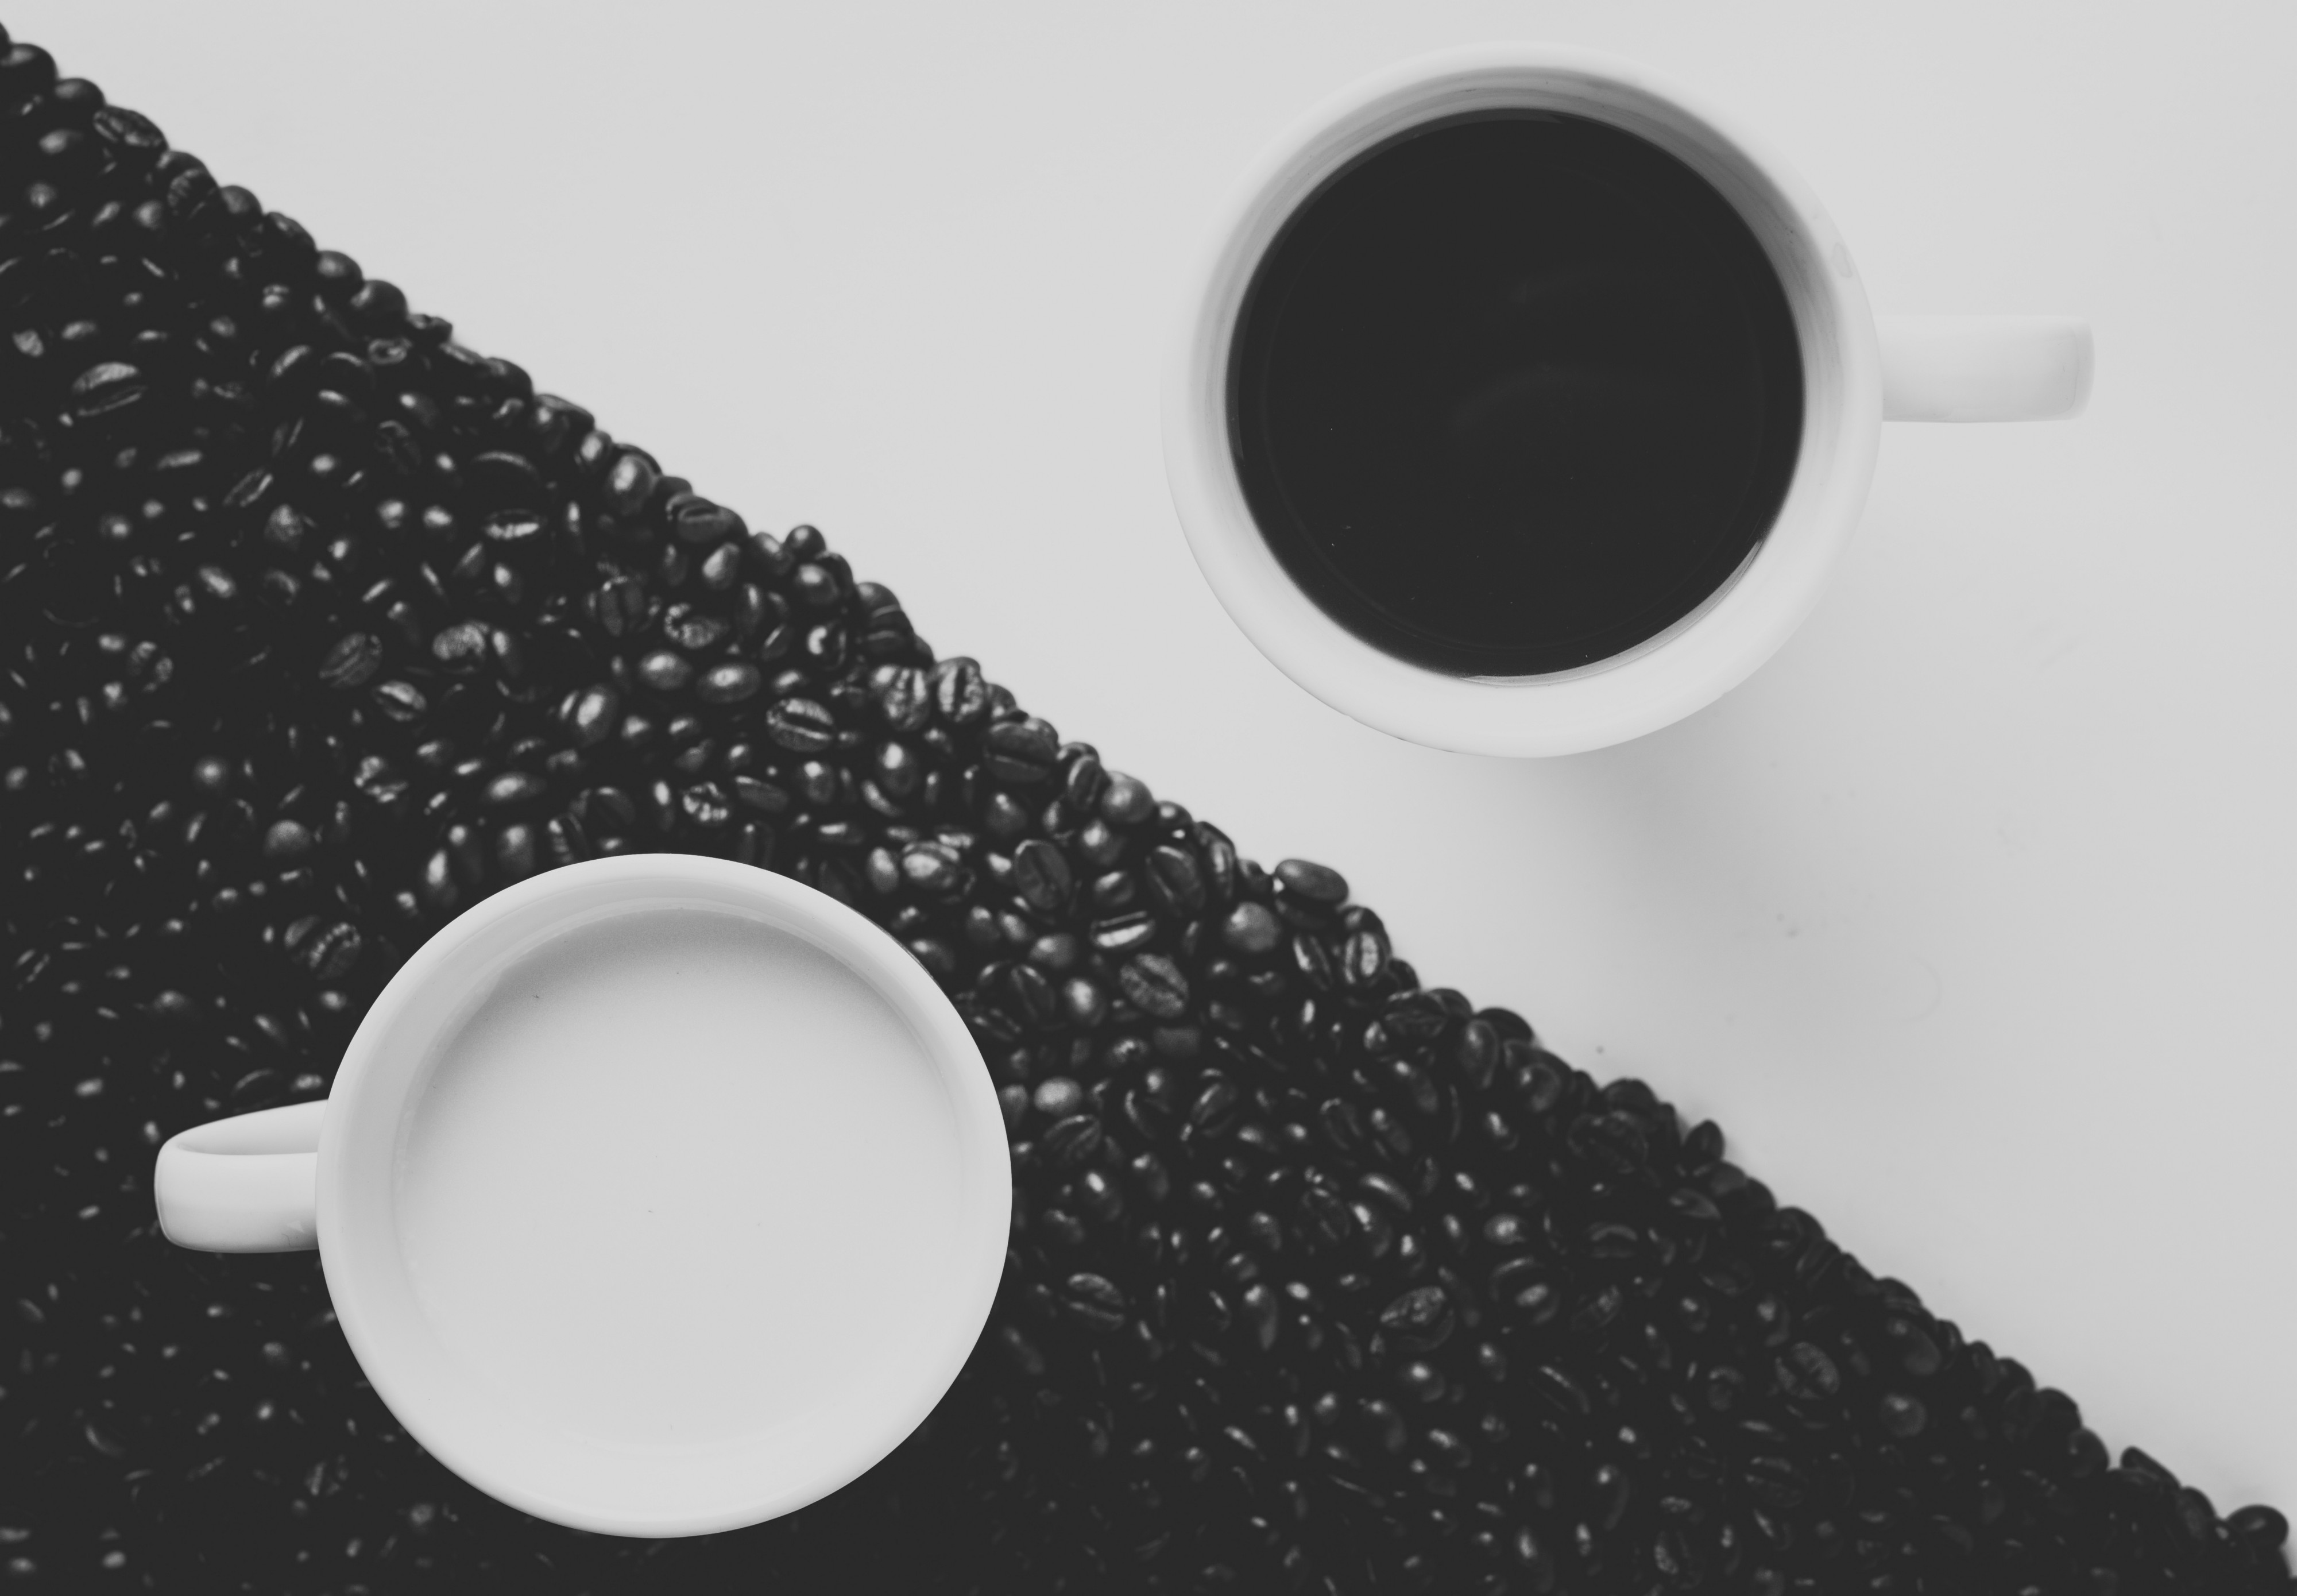 Coffee and milk on a table, with one half of the table covered in coffee beans.